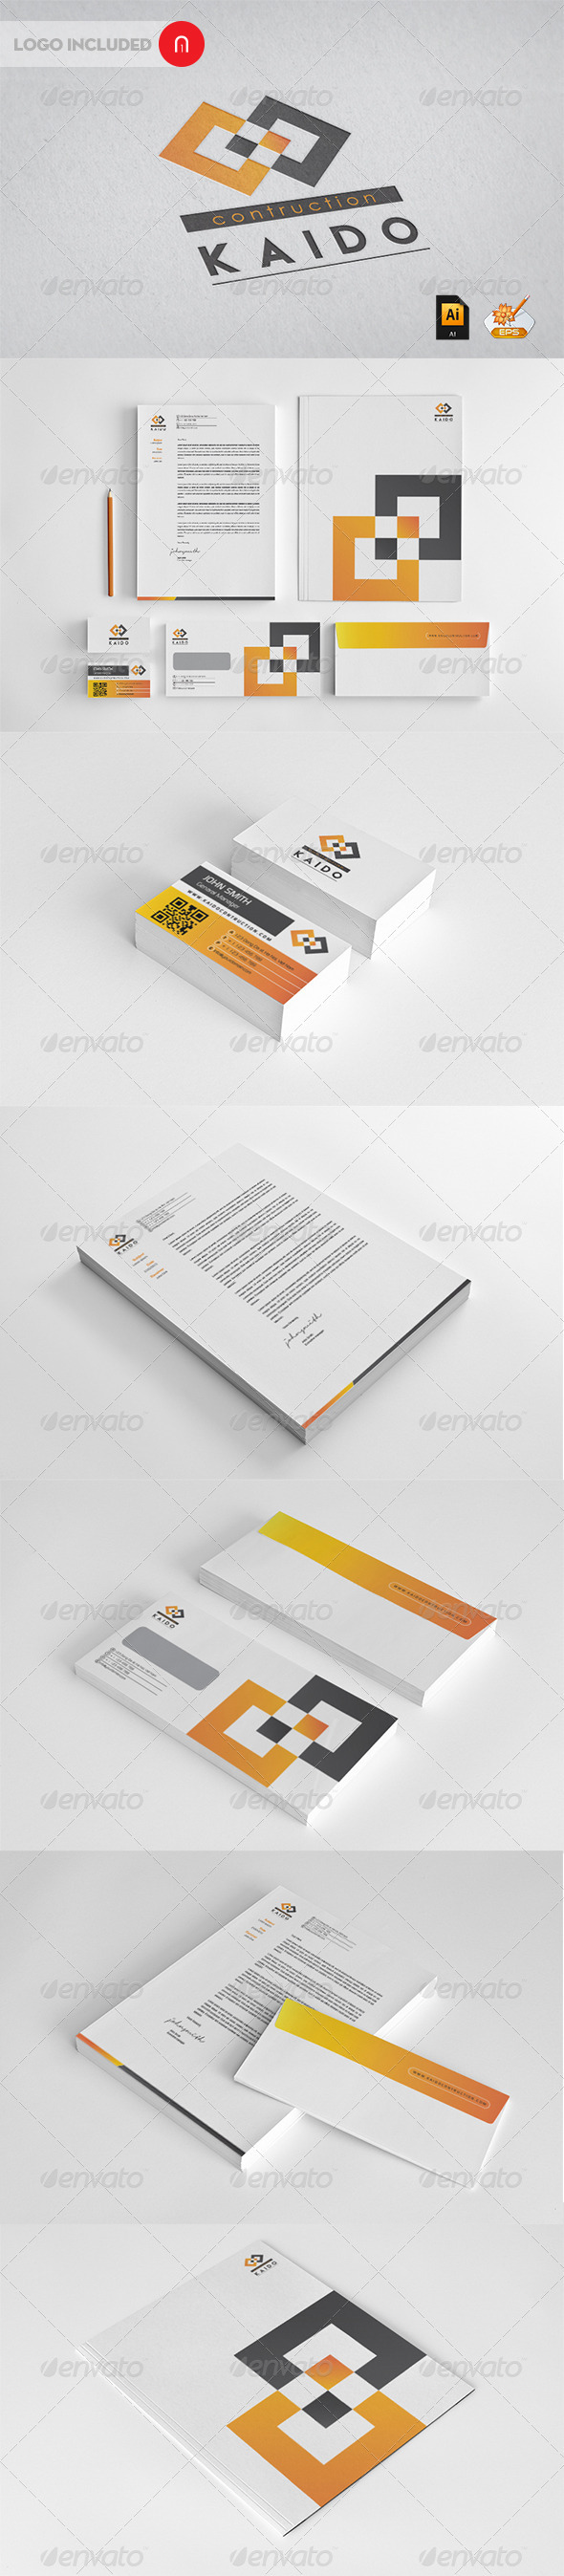 Kaido contruction professional Corporate Identity - Stationery Print Templates